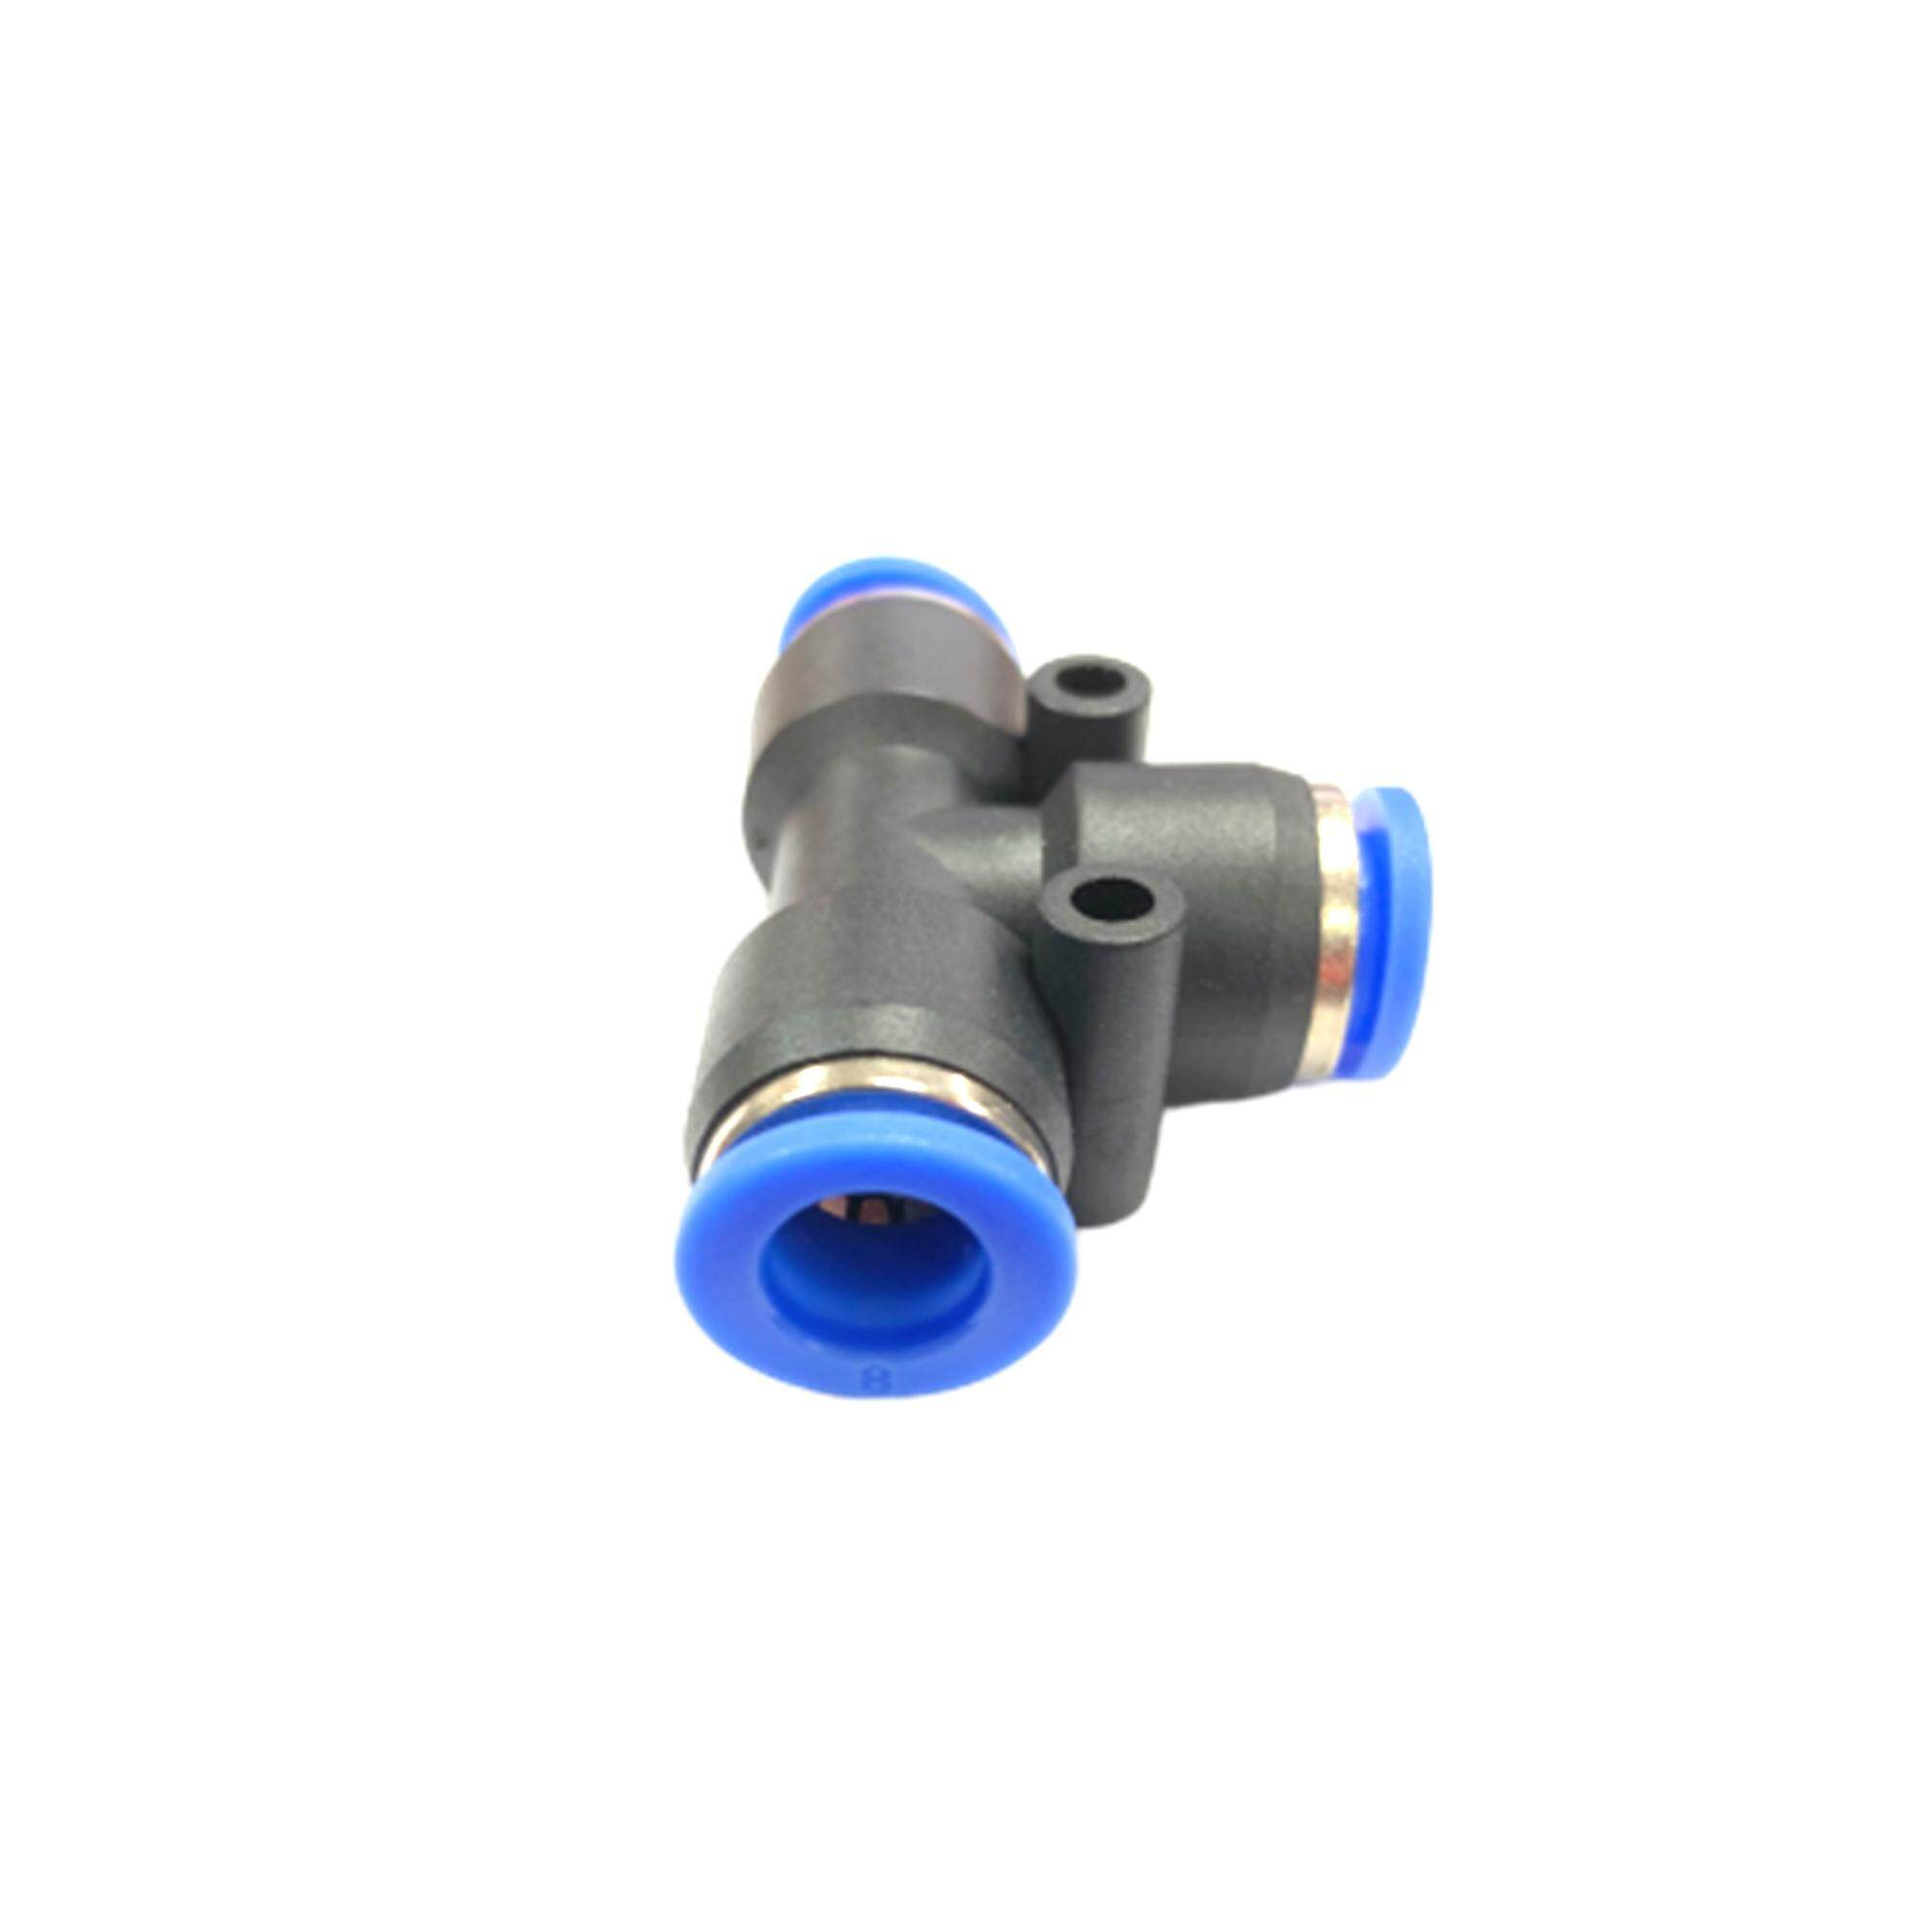 Pe08 8mm Union Tee Pneumatic Air Push In Quick Fittings By Hong Sheng Store.